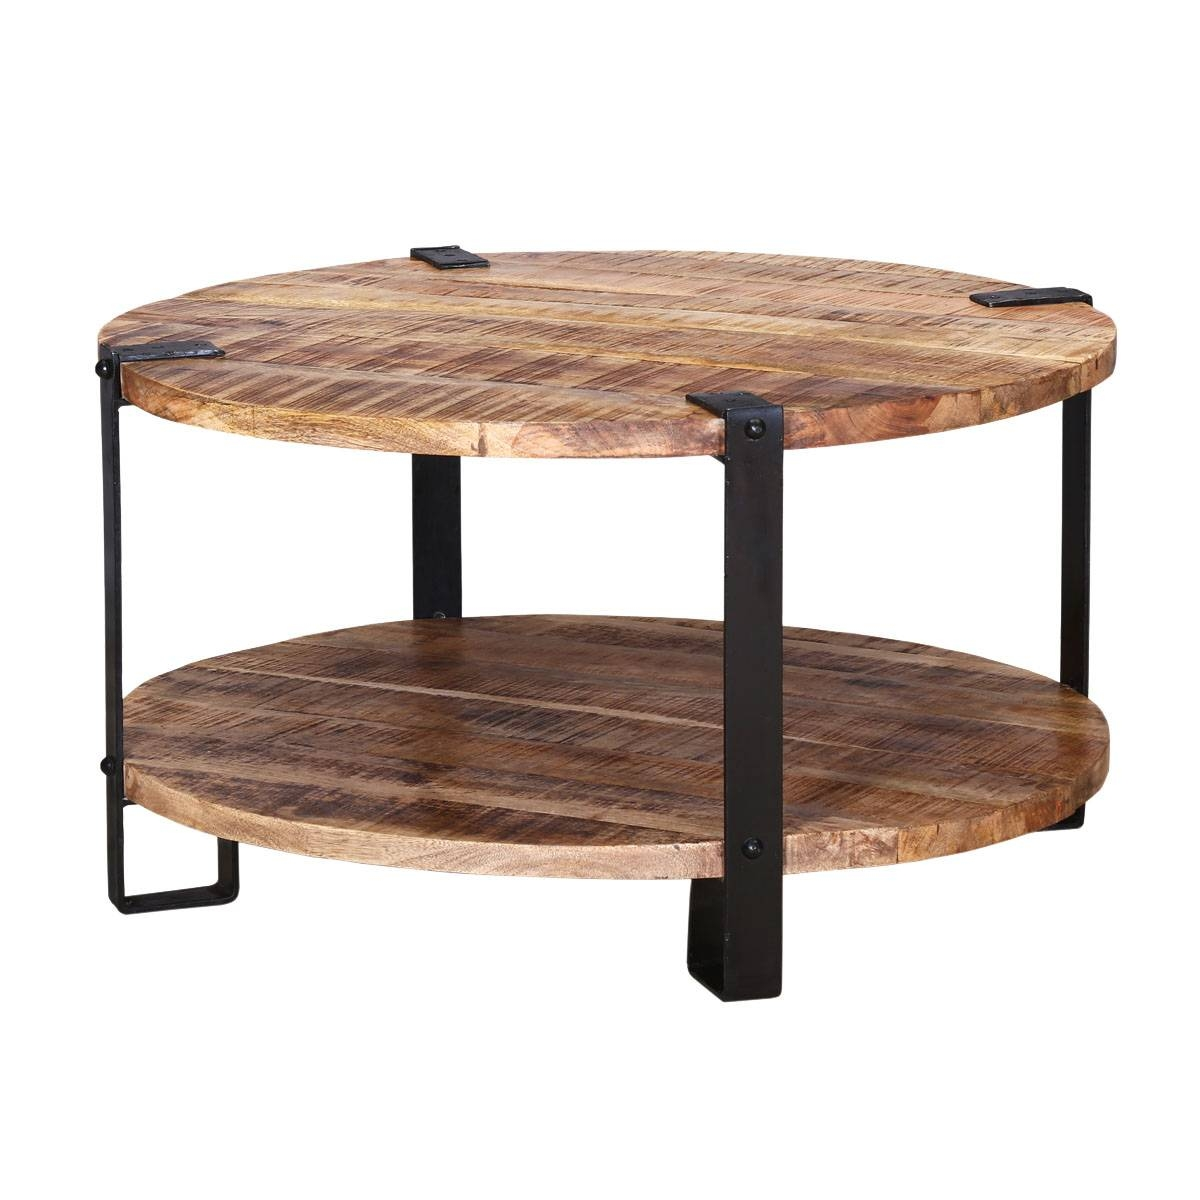 "Roxborough 35"" Rustic Industrial Round Coffee Table With Saw Marks throughout Industrial Round Coffee Tables (Image 15 of 15)"